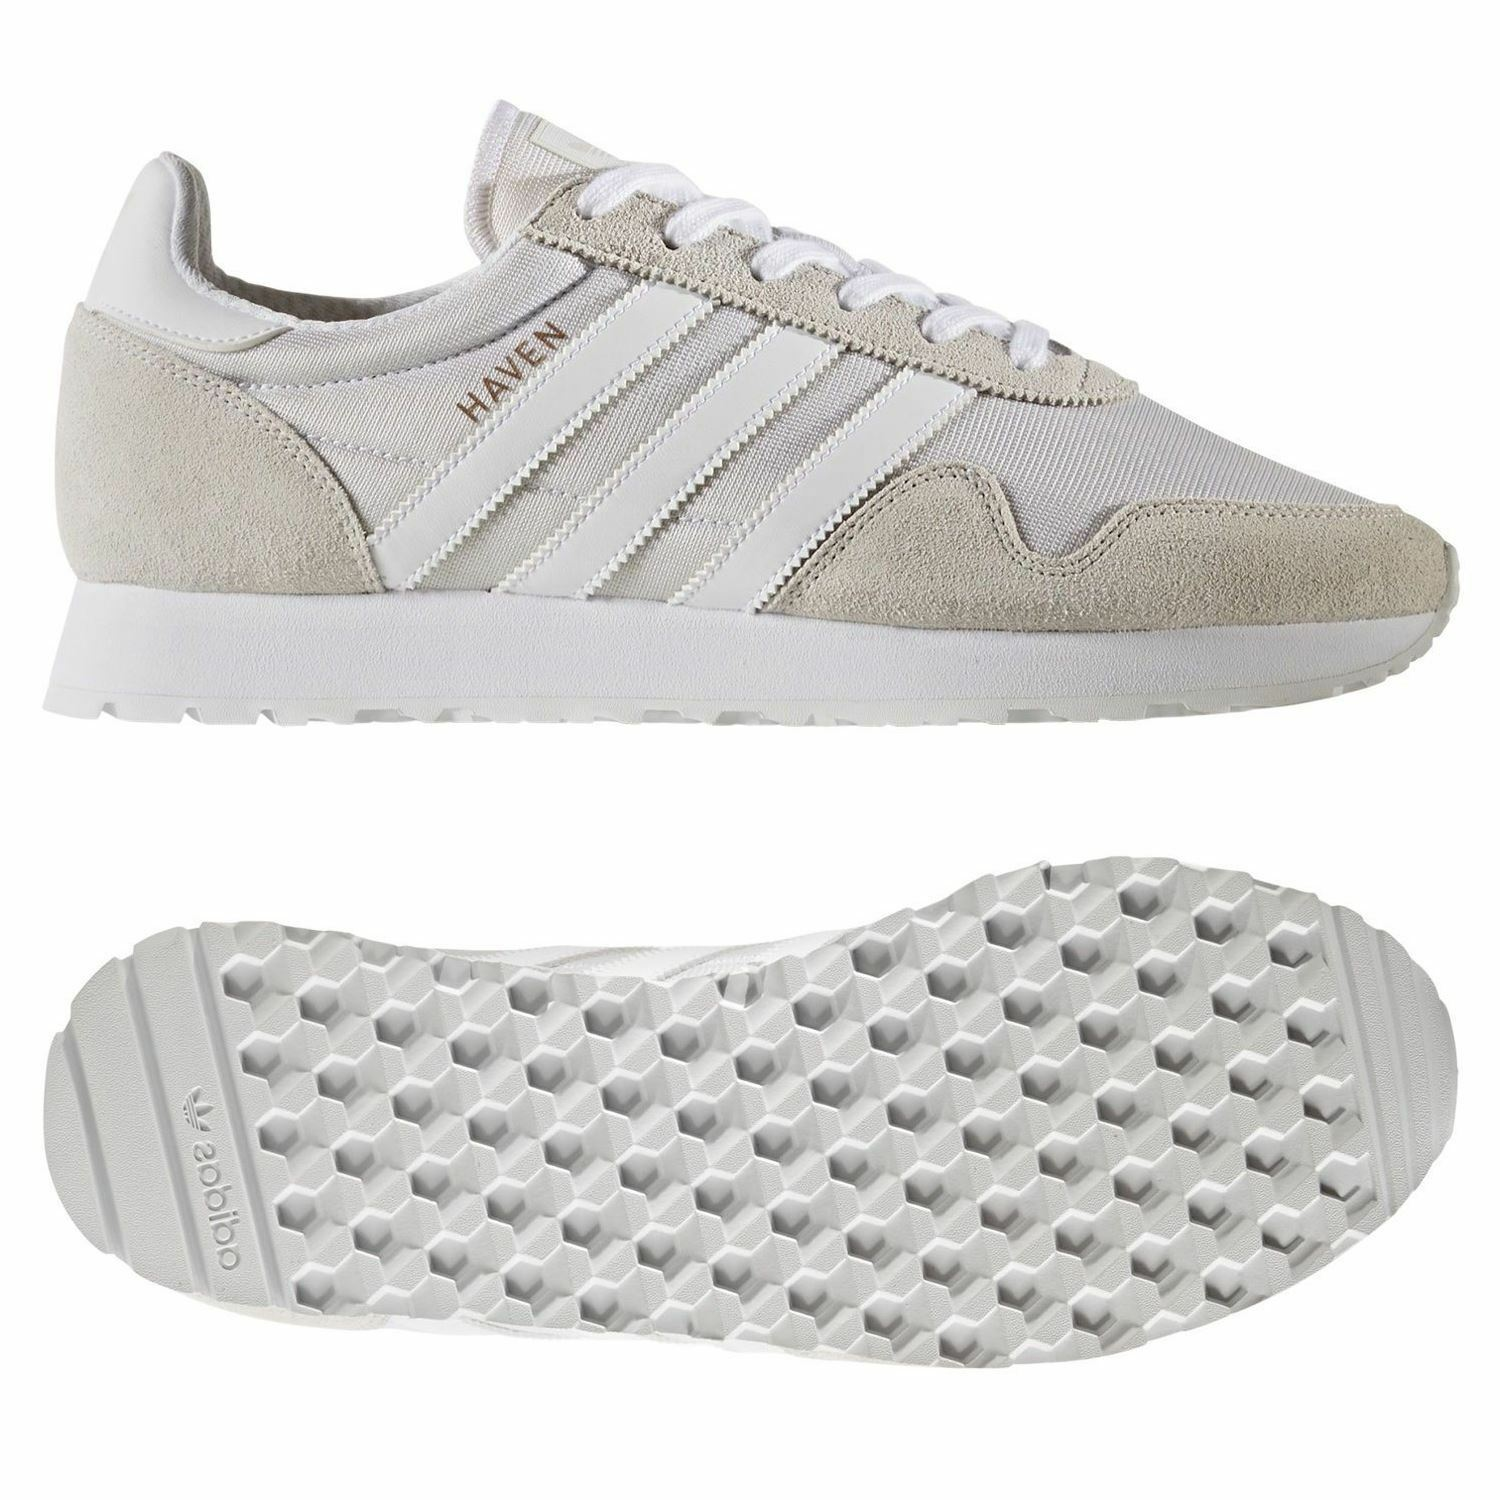 Adidas ORIGINALS MEN'S HAVEN TRAINERS WHITE SHOES SNEAKERS RETRO RUNNING NEW